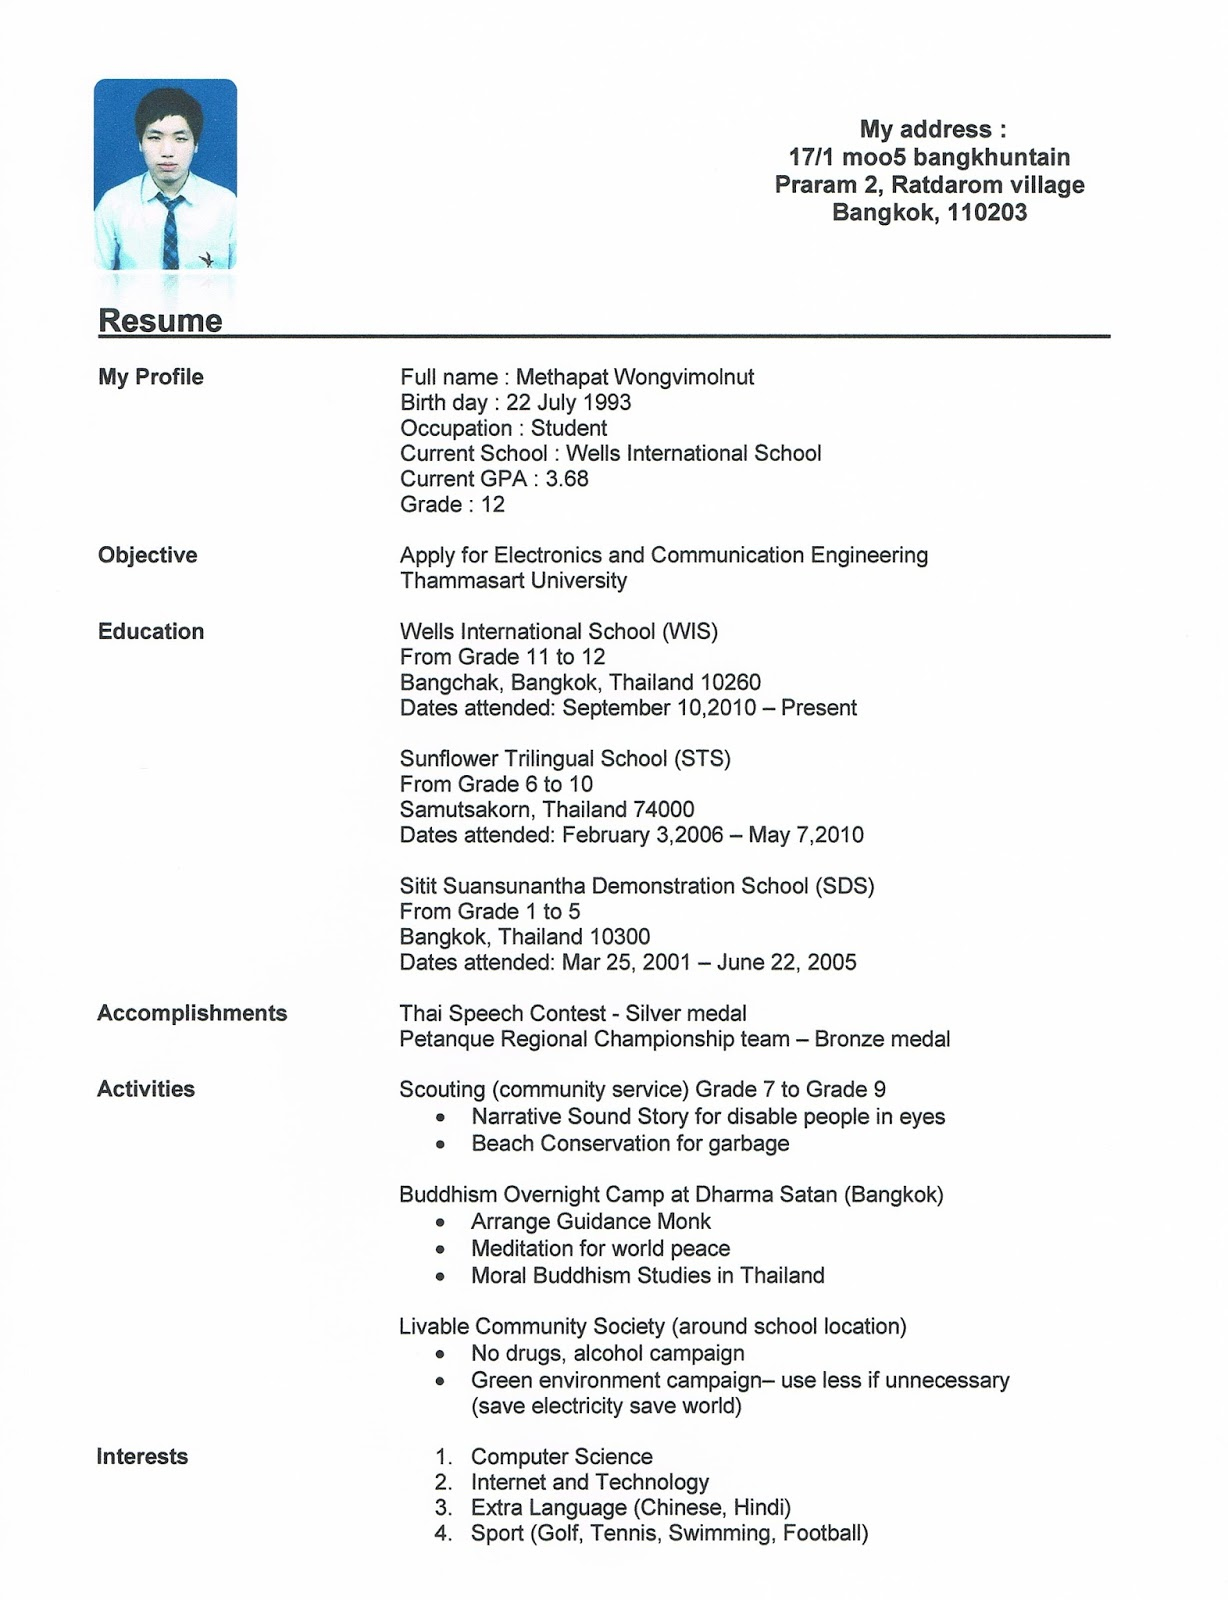 sample resume for college students with no job experience - sarp